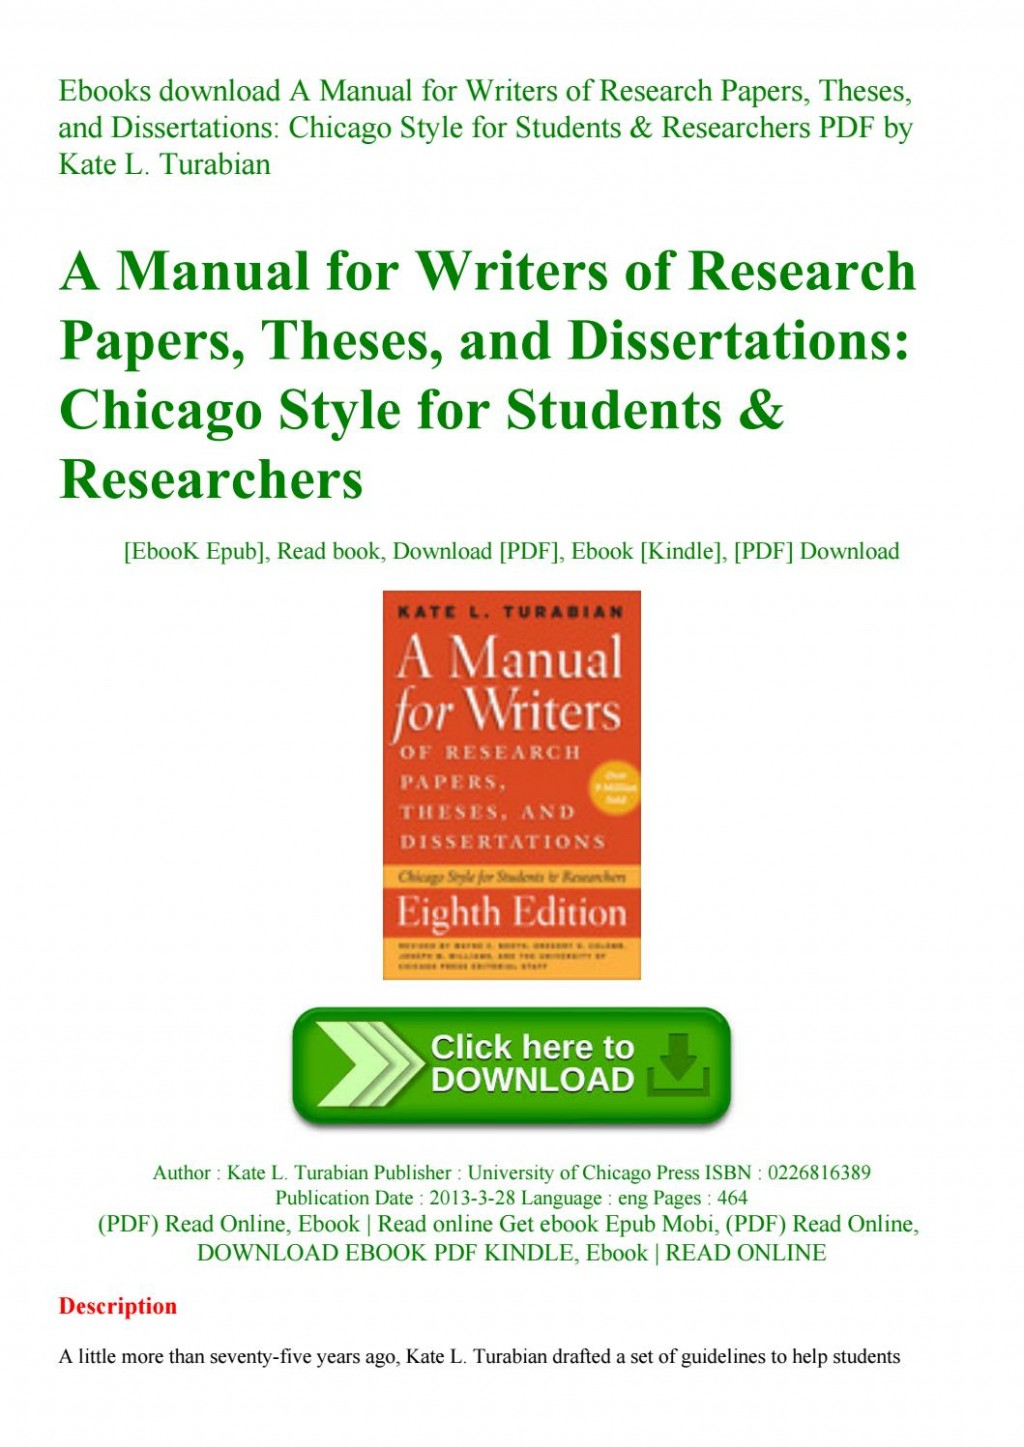 005 Page 1 Manual For Writers Of Researchs Theses And Dissertations Turabian Pdf Wonderful A Research Papers Large